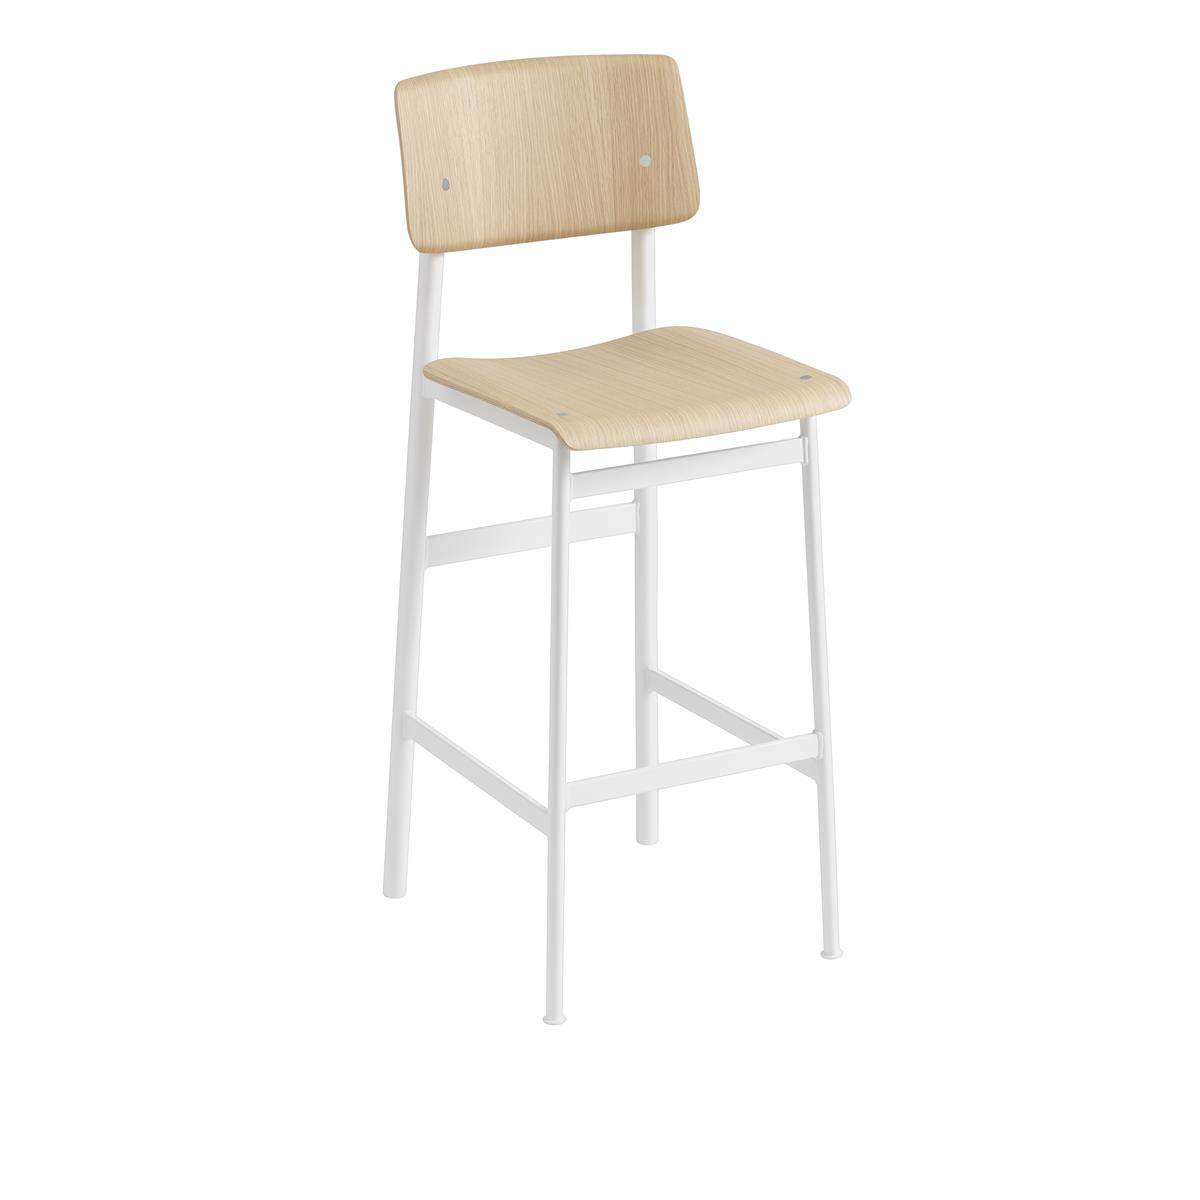 Loft Bar Stool H75 - White & Oak